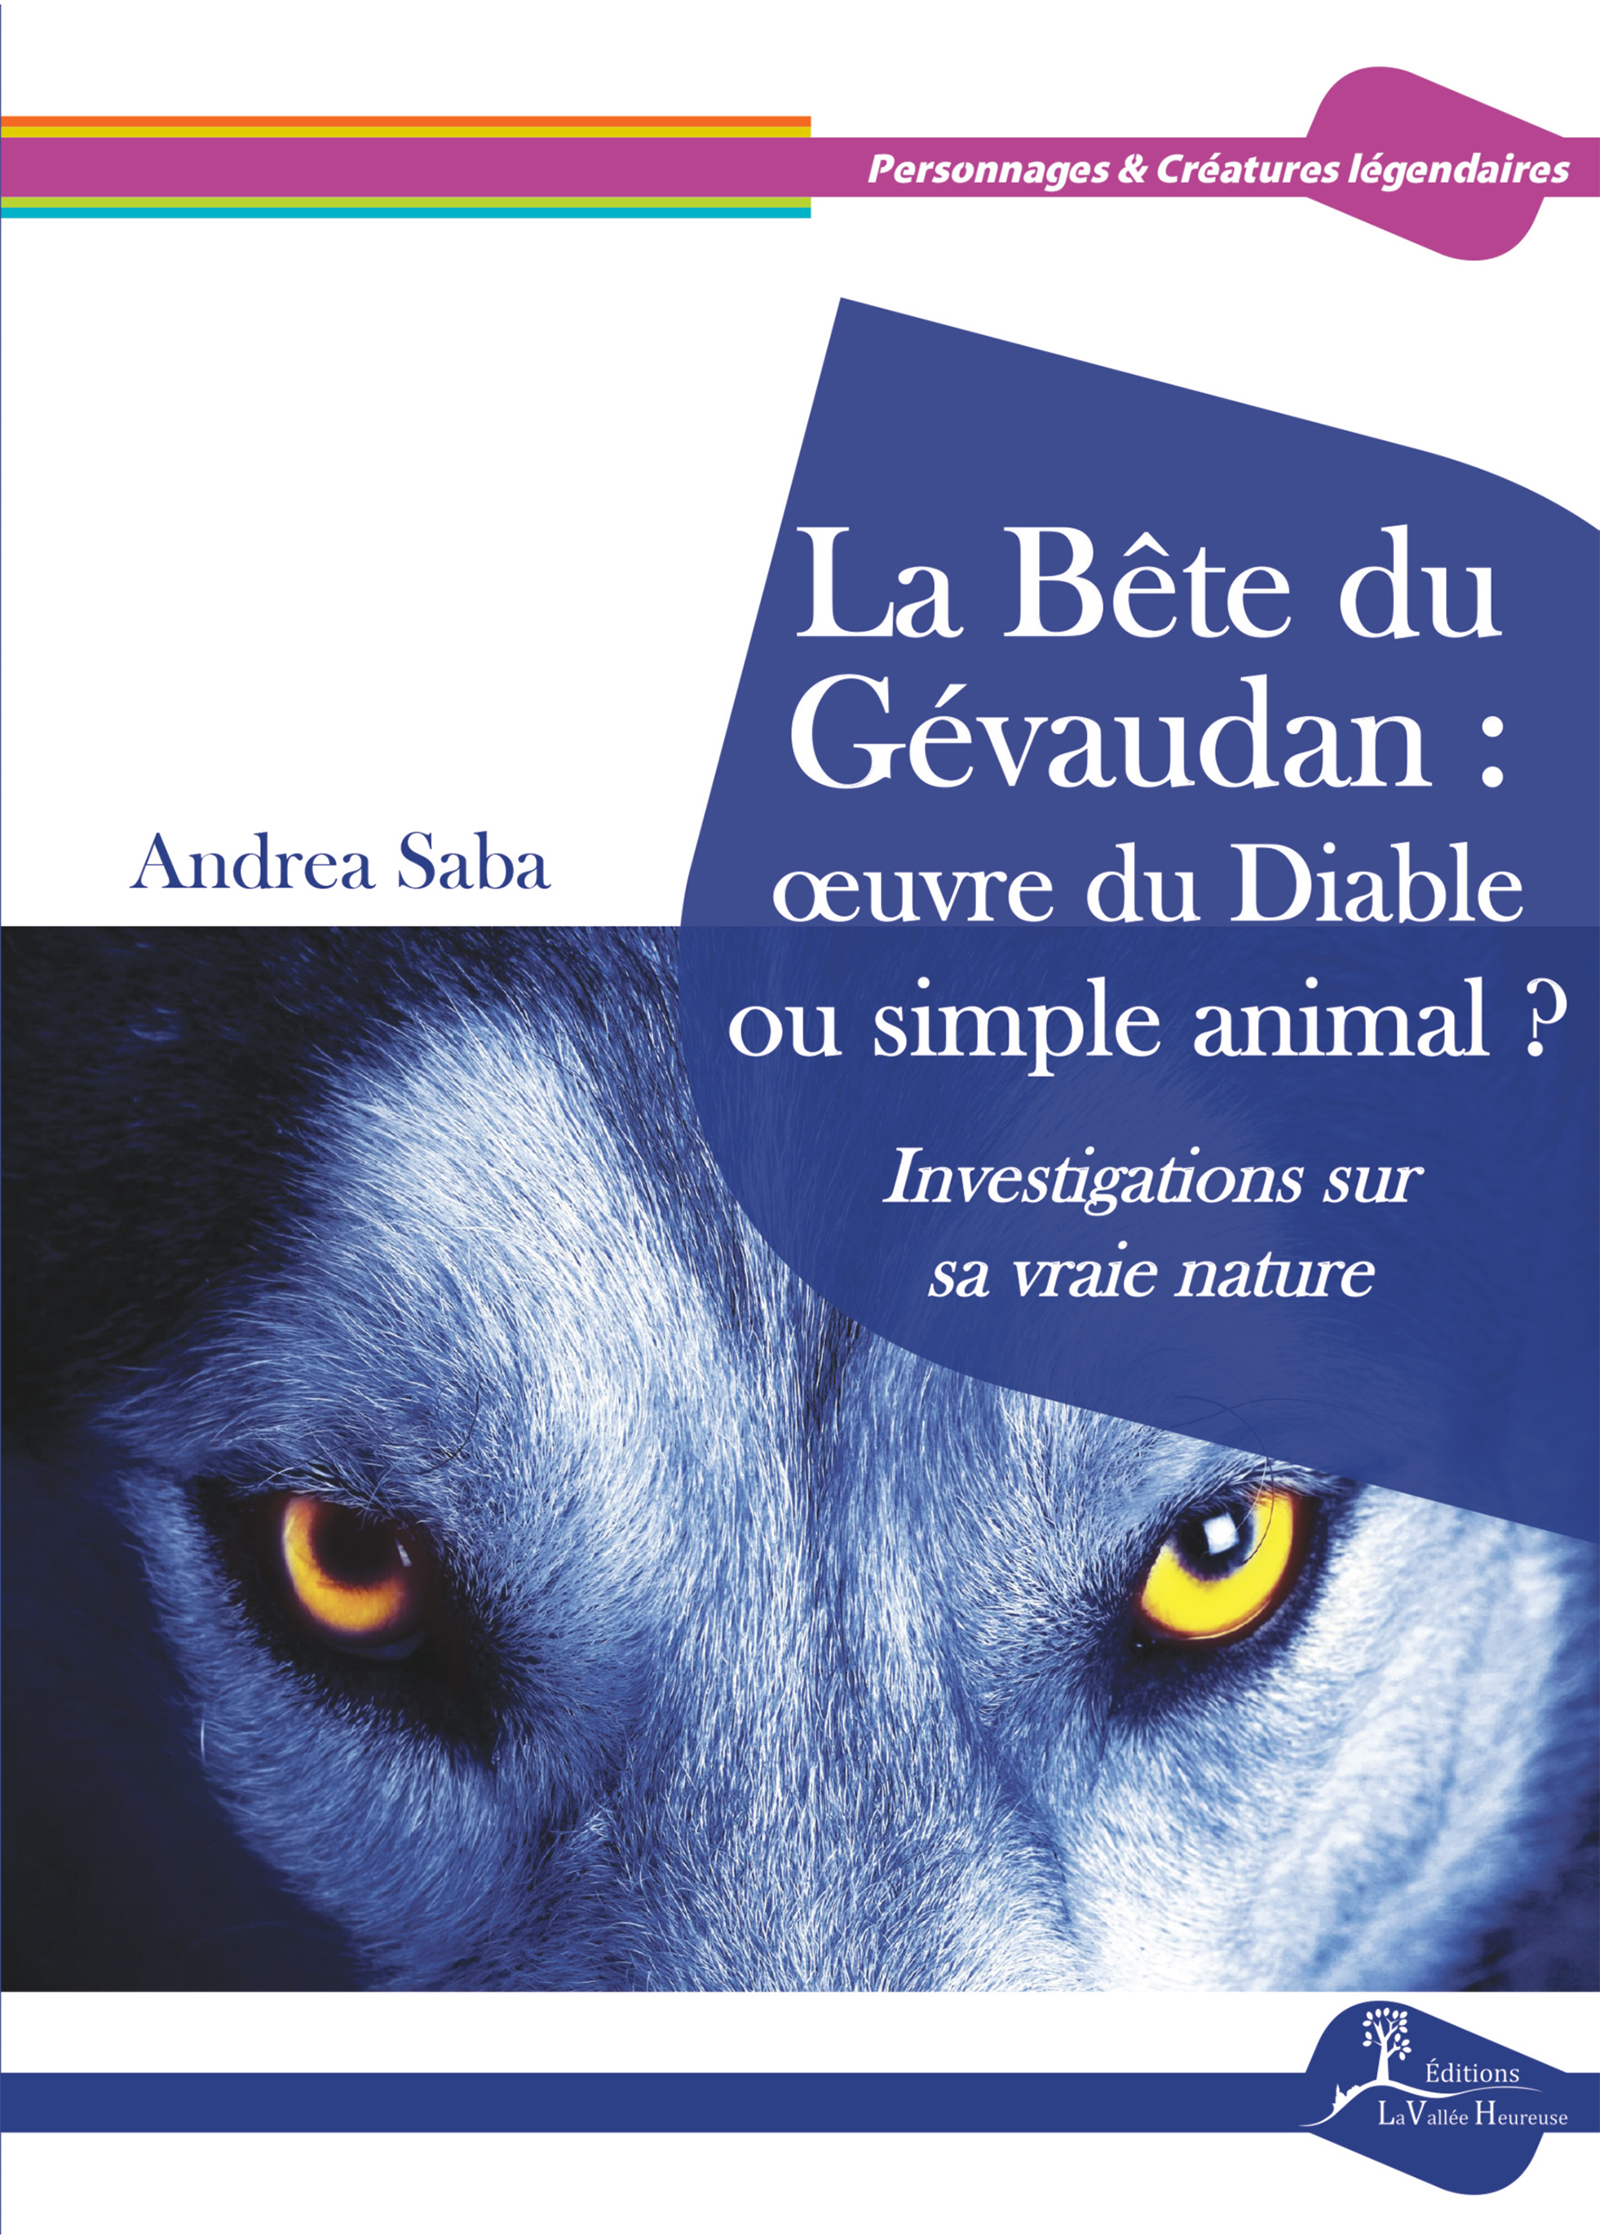 La Bête du Gévaudan : œuvre du Diable ou simple animal ?